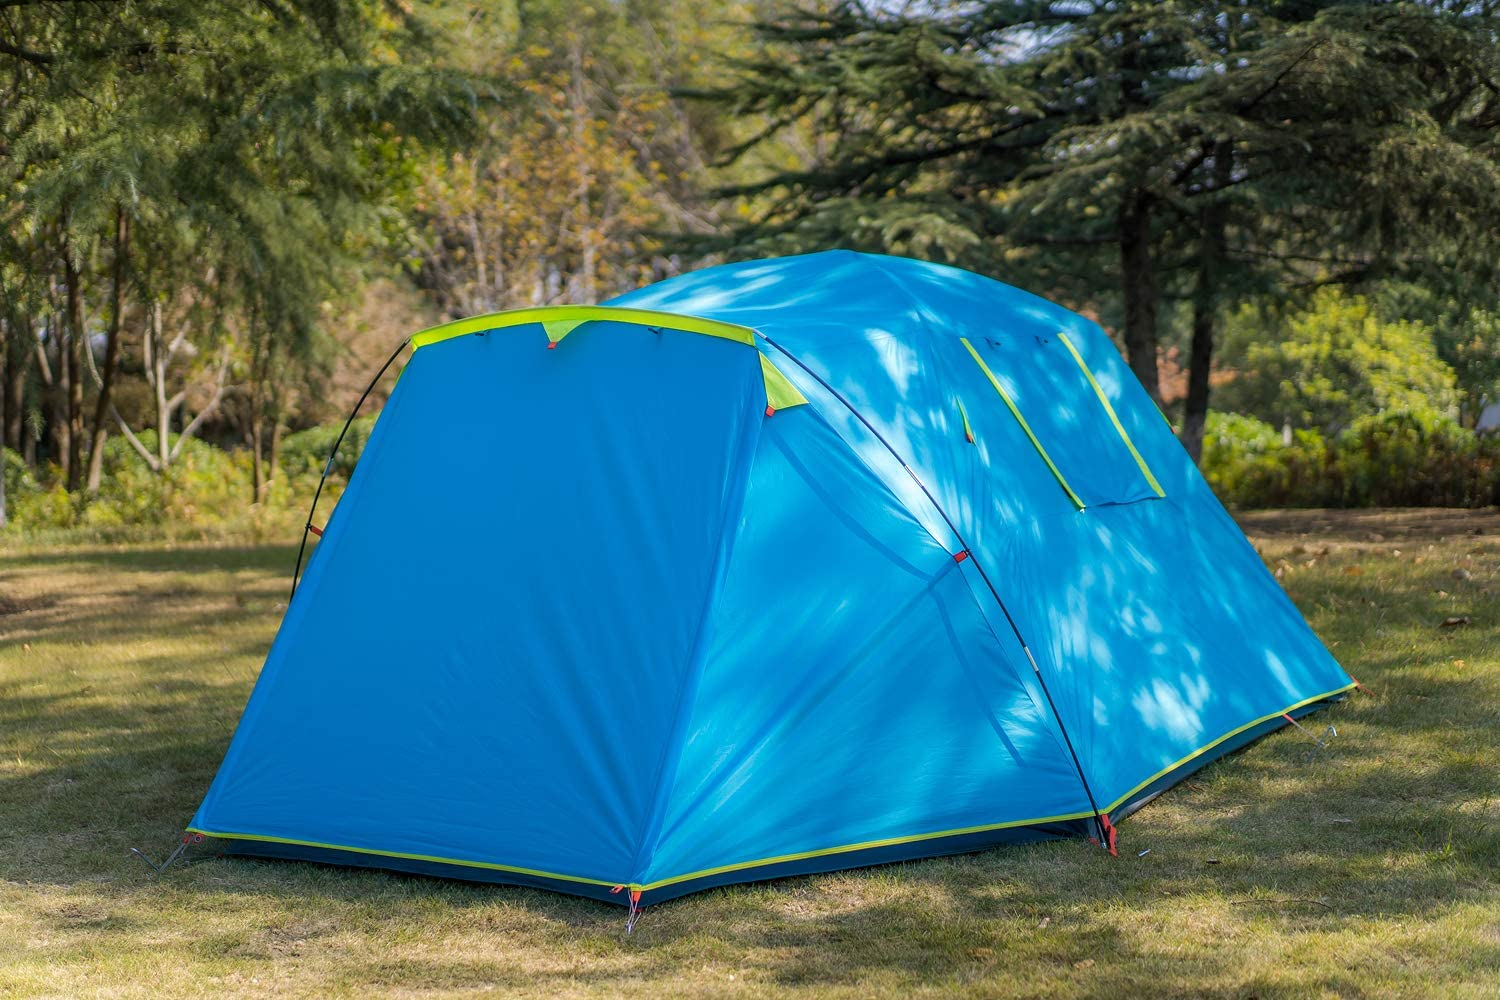 KAZOO Outdoor Camping Tent Durable Waterproof Family Large Tents 4 Person E...